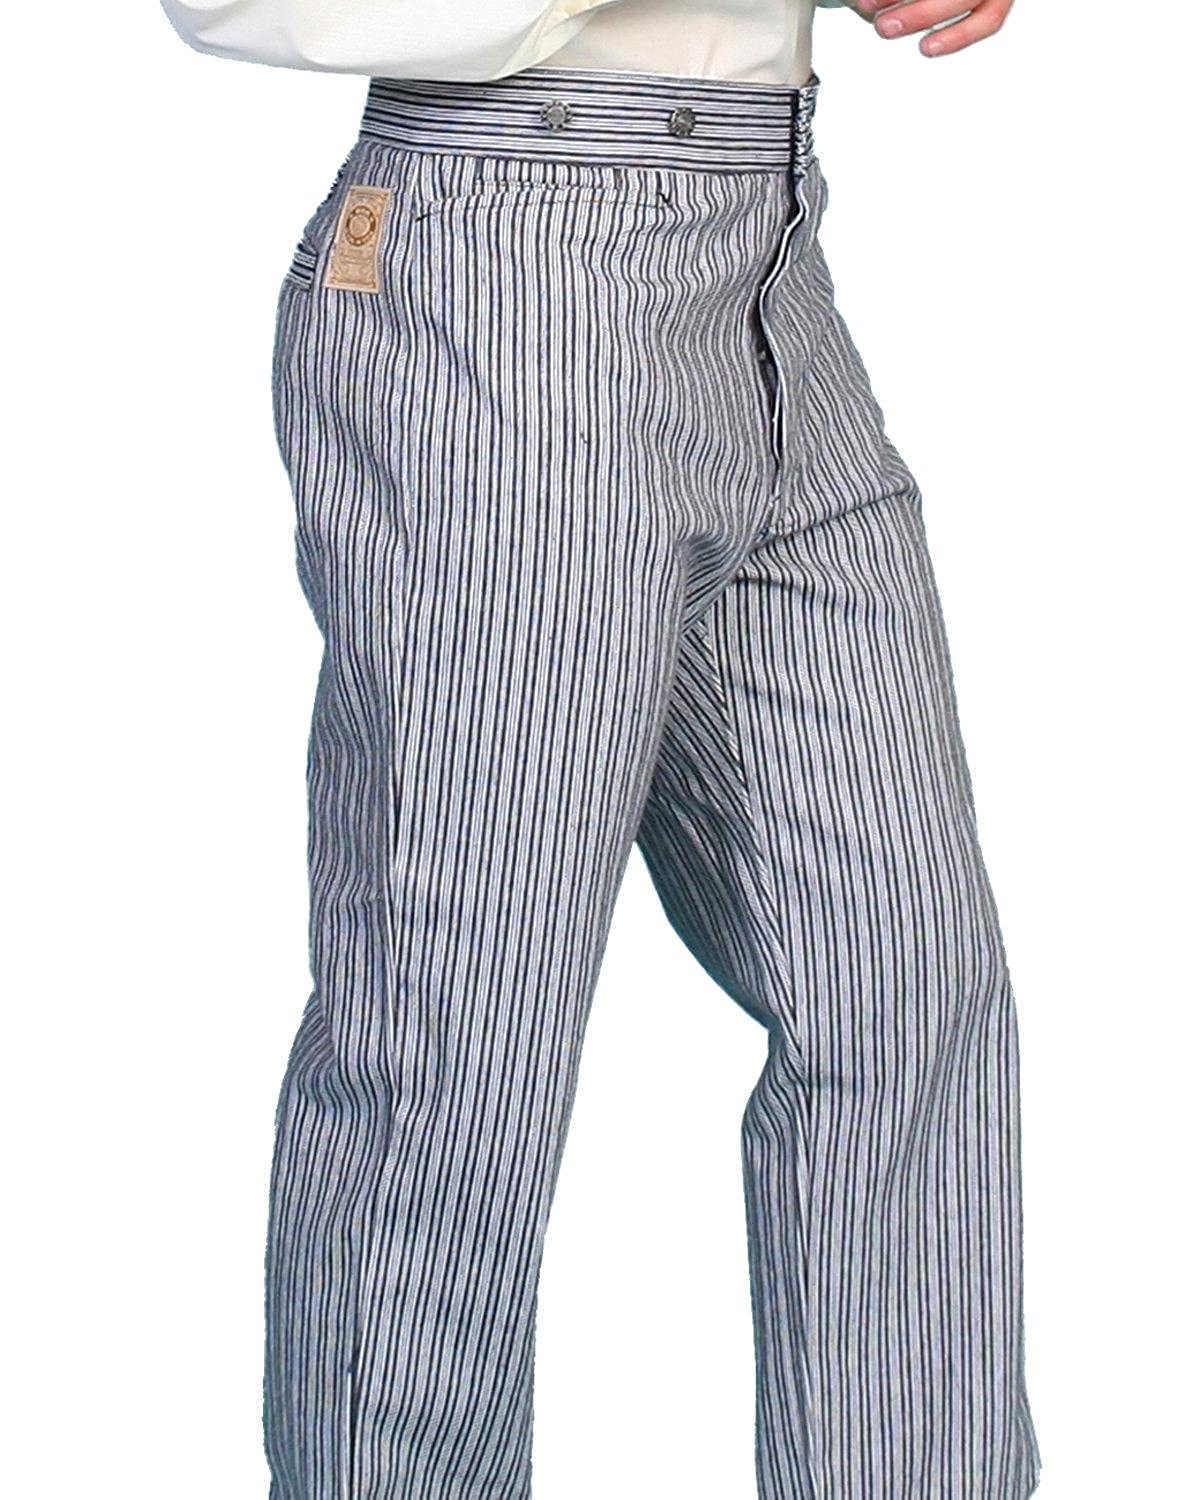 Victorian Men's Pants – Victorian Steampunk Men's Clothing Scully Wahmaker Mens Wahmaker Railhead Stripe Pants $99.99 AT vintagedancer.com